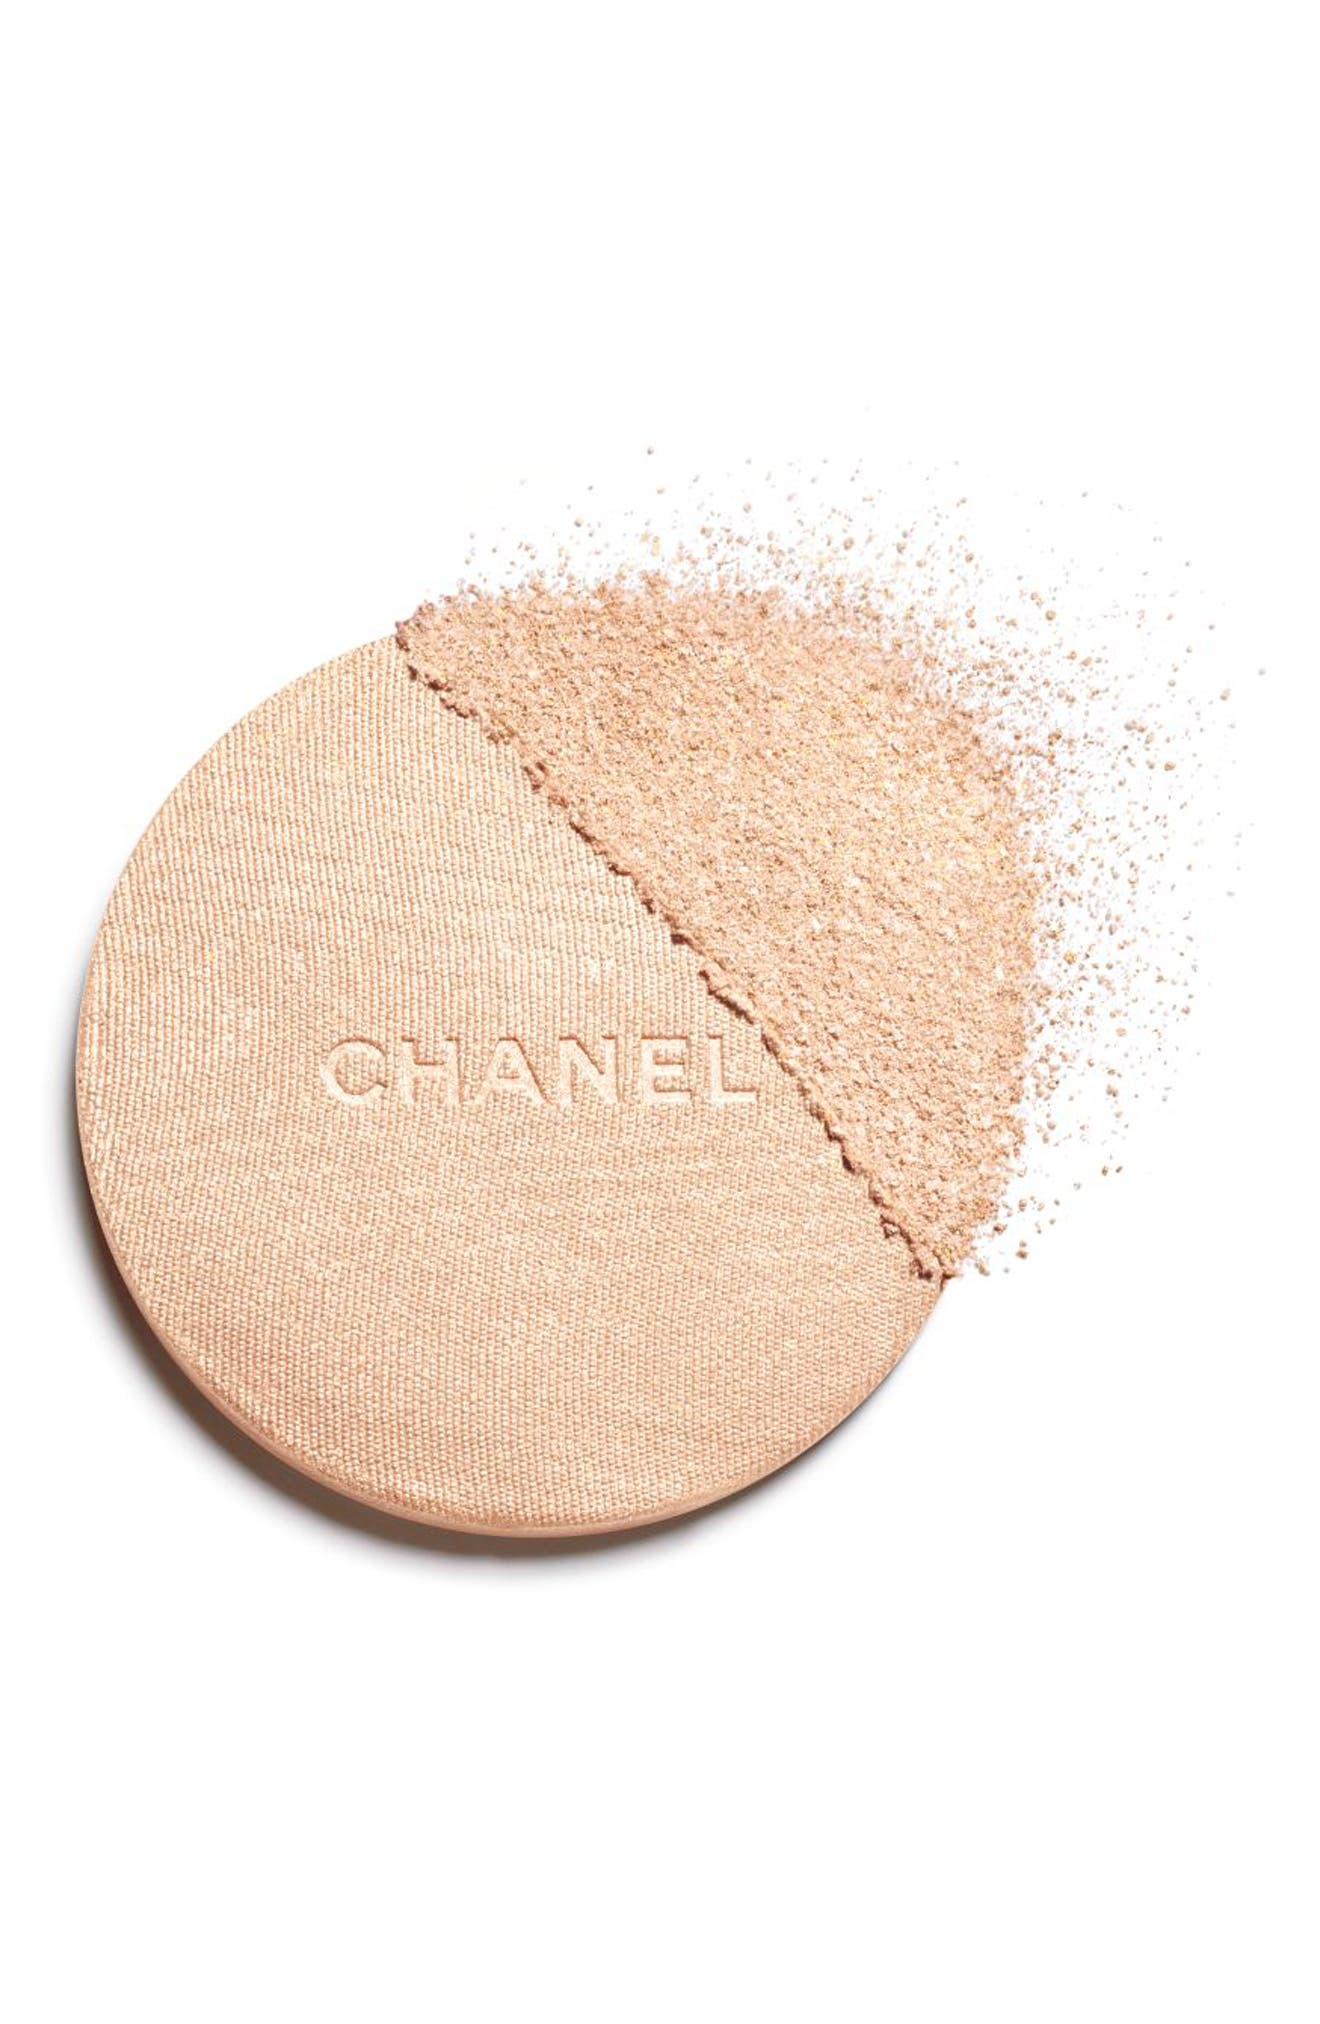 CHANEL, HIGHLIGHTING<br />Powder Compact, Alternate thumbnail 2, color, 10 IVORY GOLD